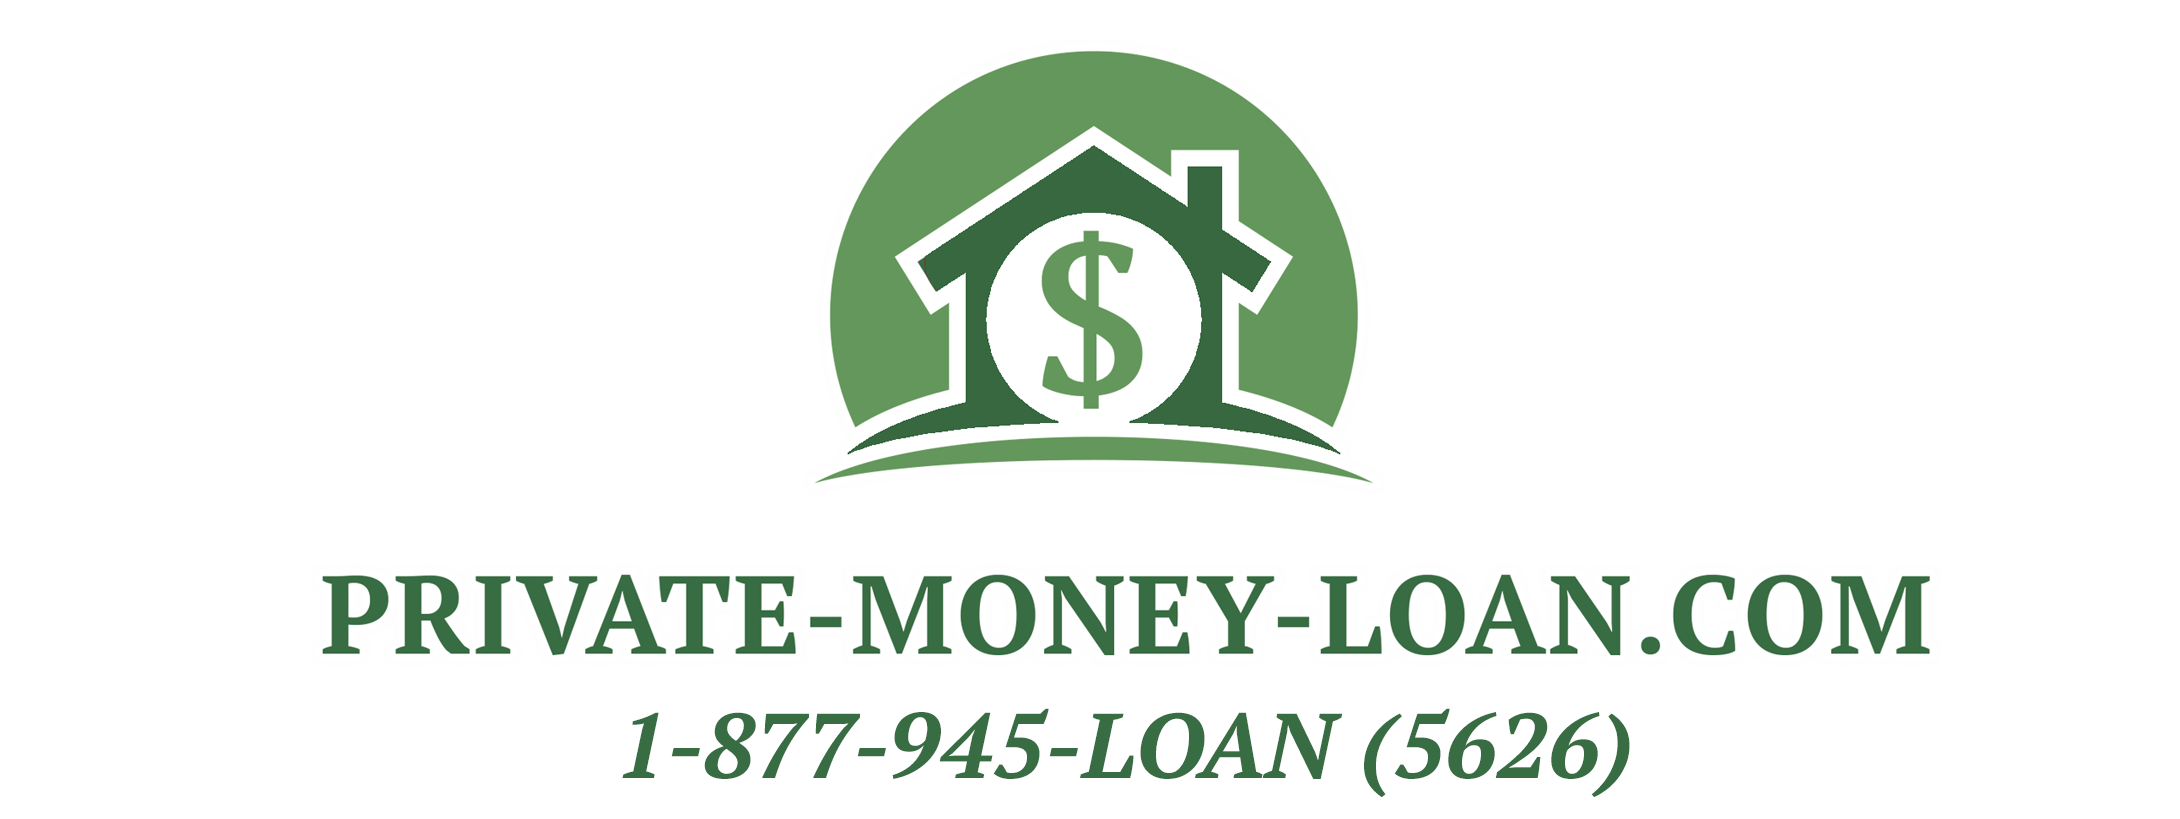 Private-Money-Loan.com logo